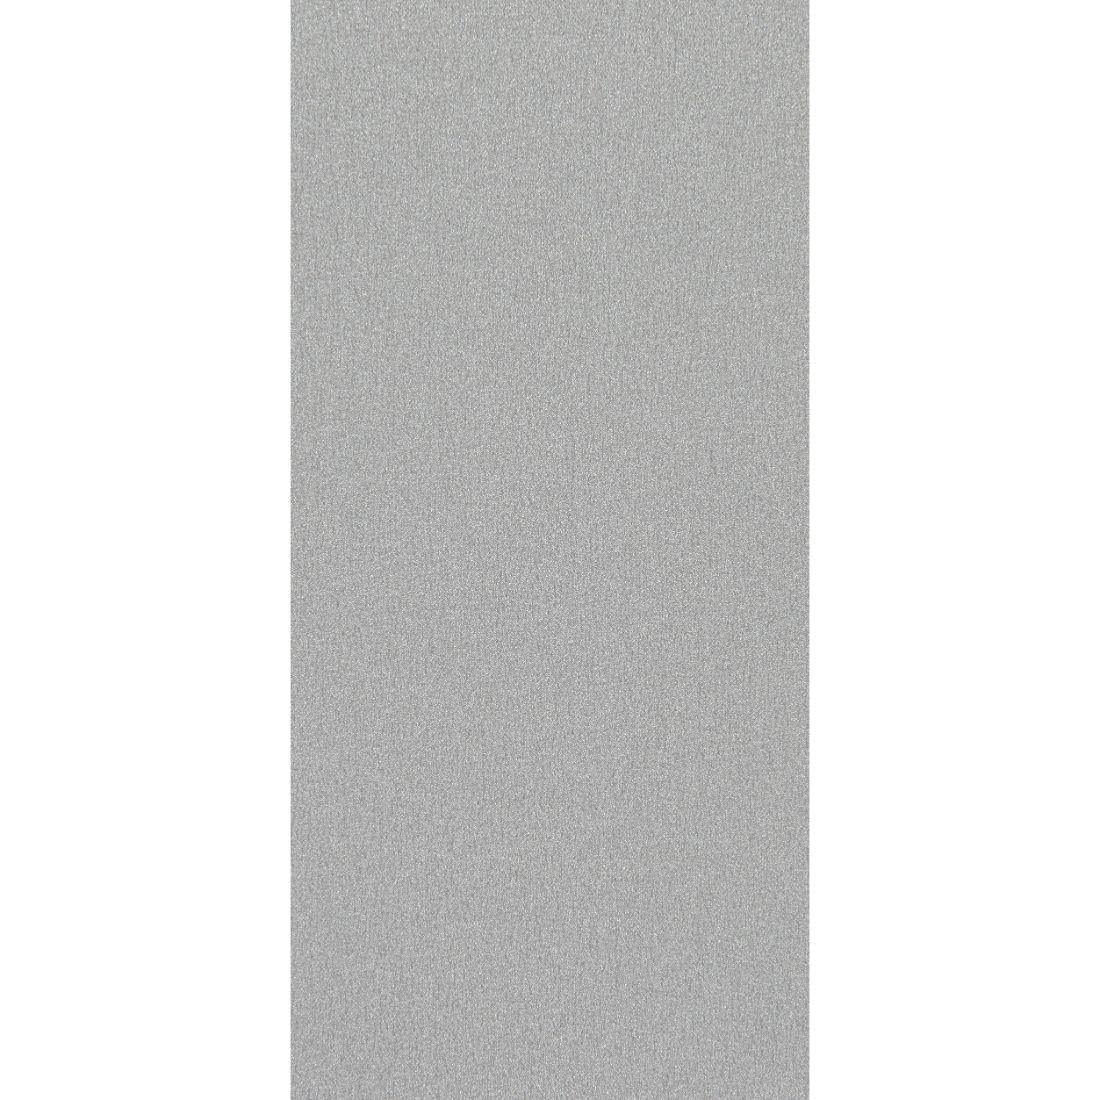 Specialty Wall Lining Panel Silver Bullet 2700 x 1200 x 4.5mm